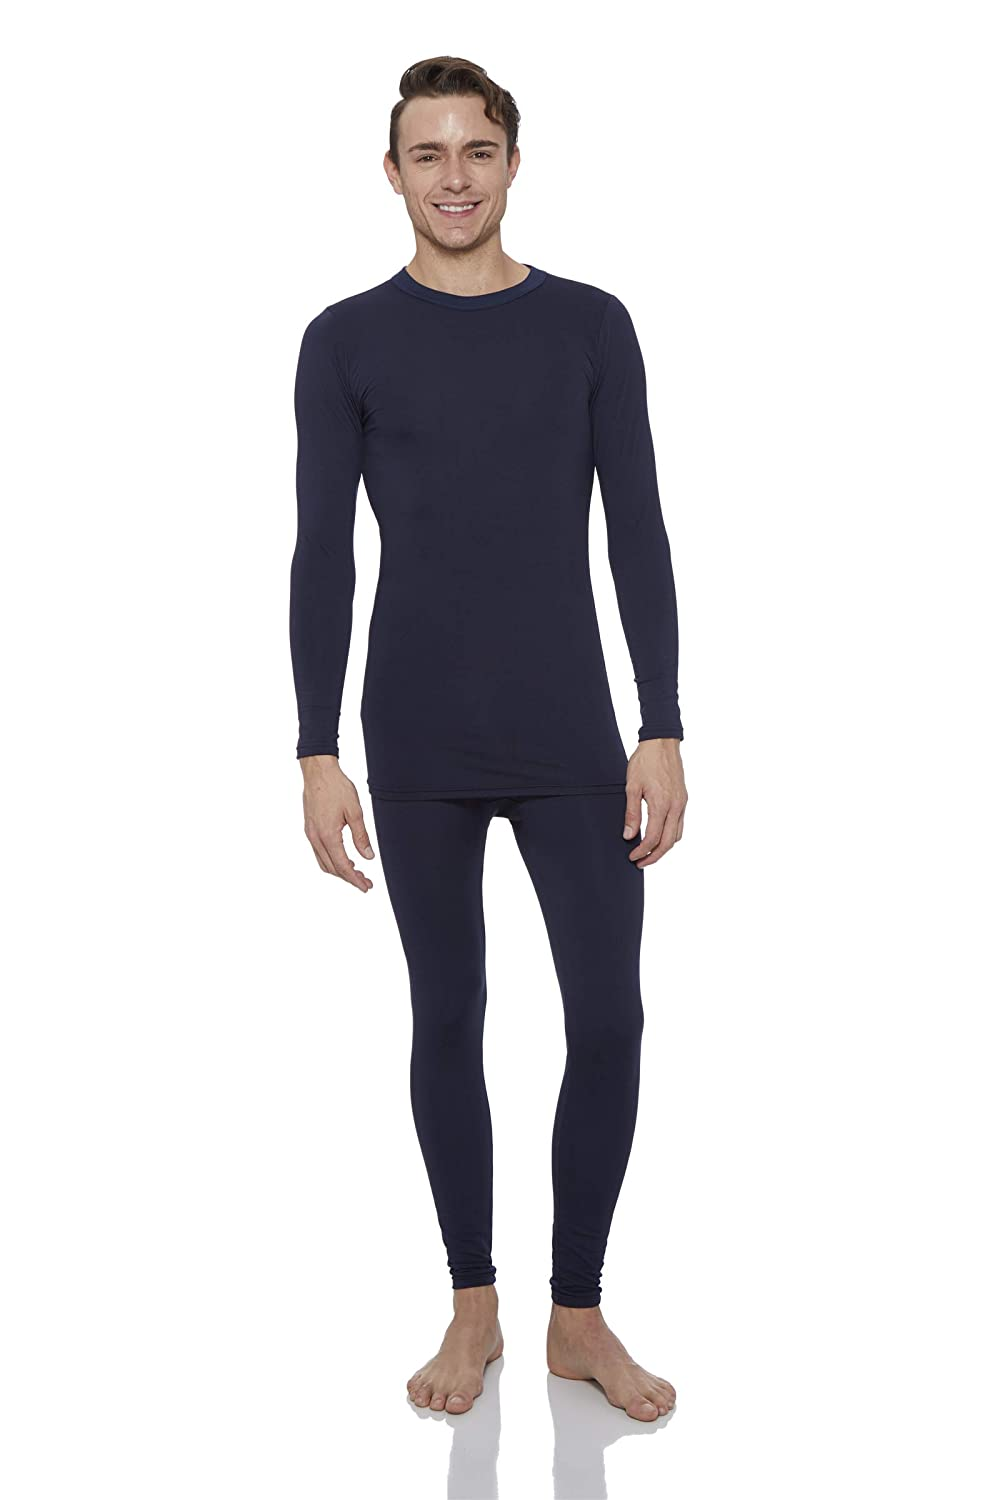 ROCKY Thermal Underwear for Men Fleece Lined Thermals Mens Base Layer Long John Set Navy